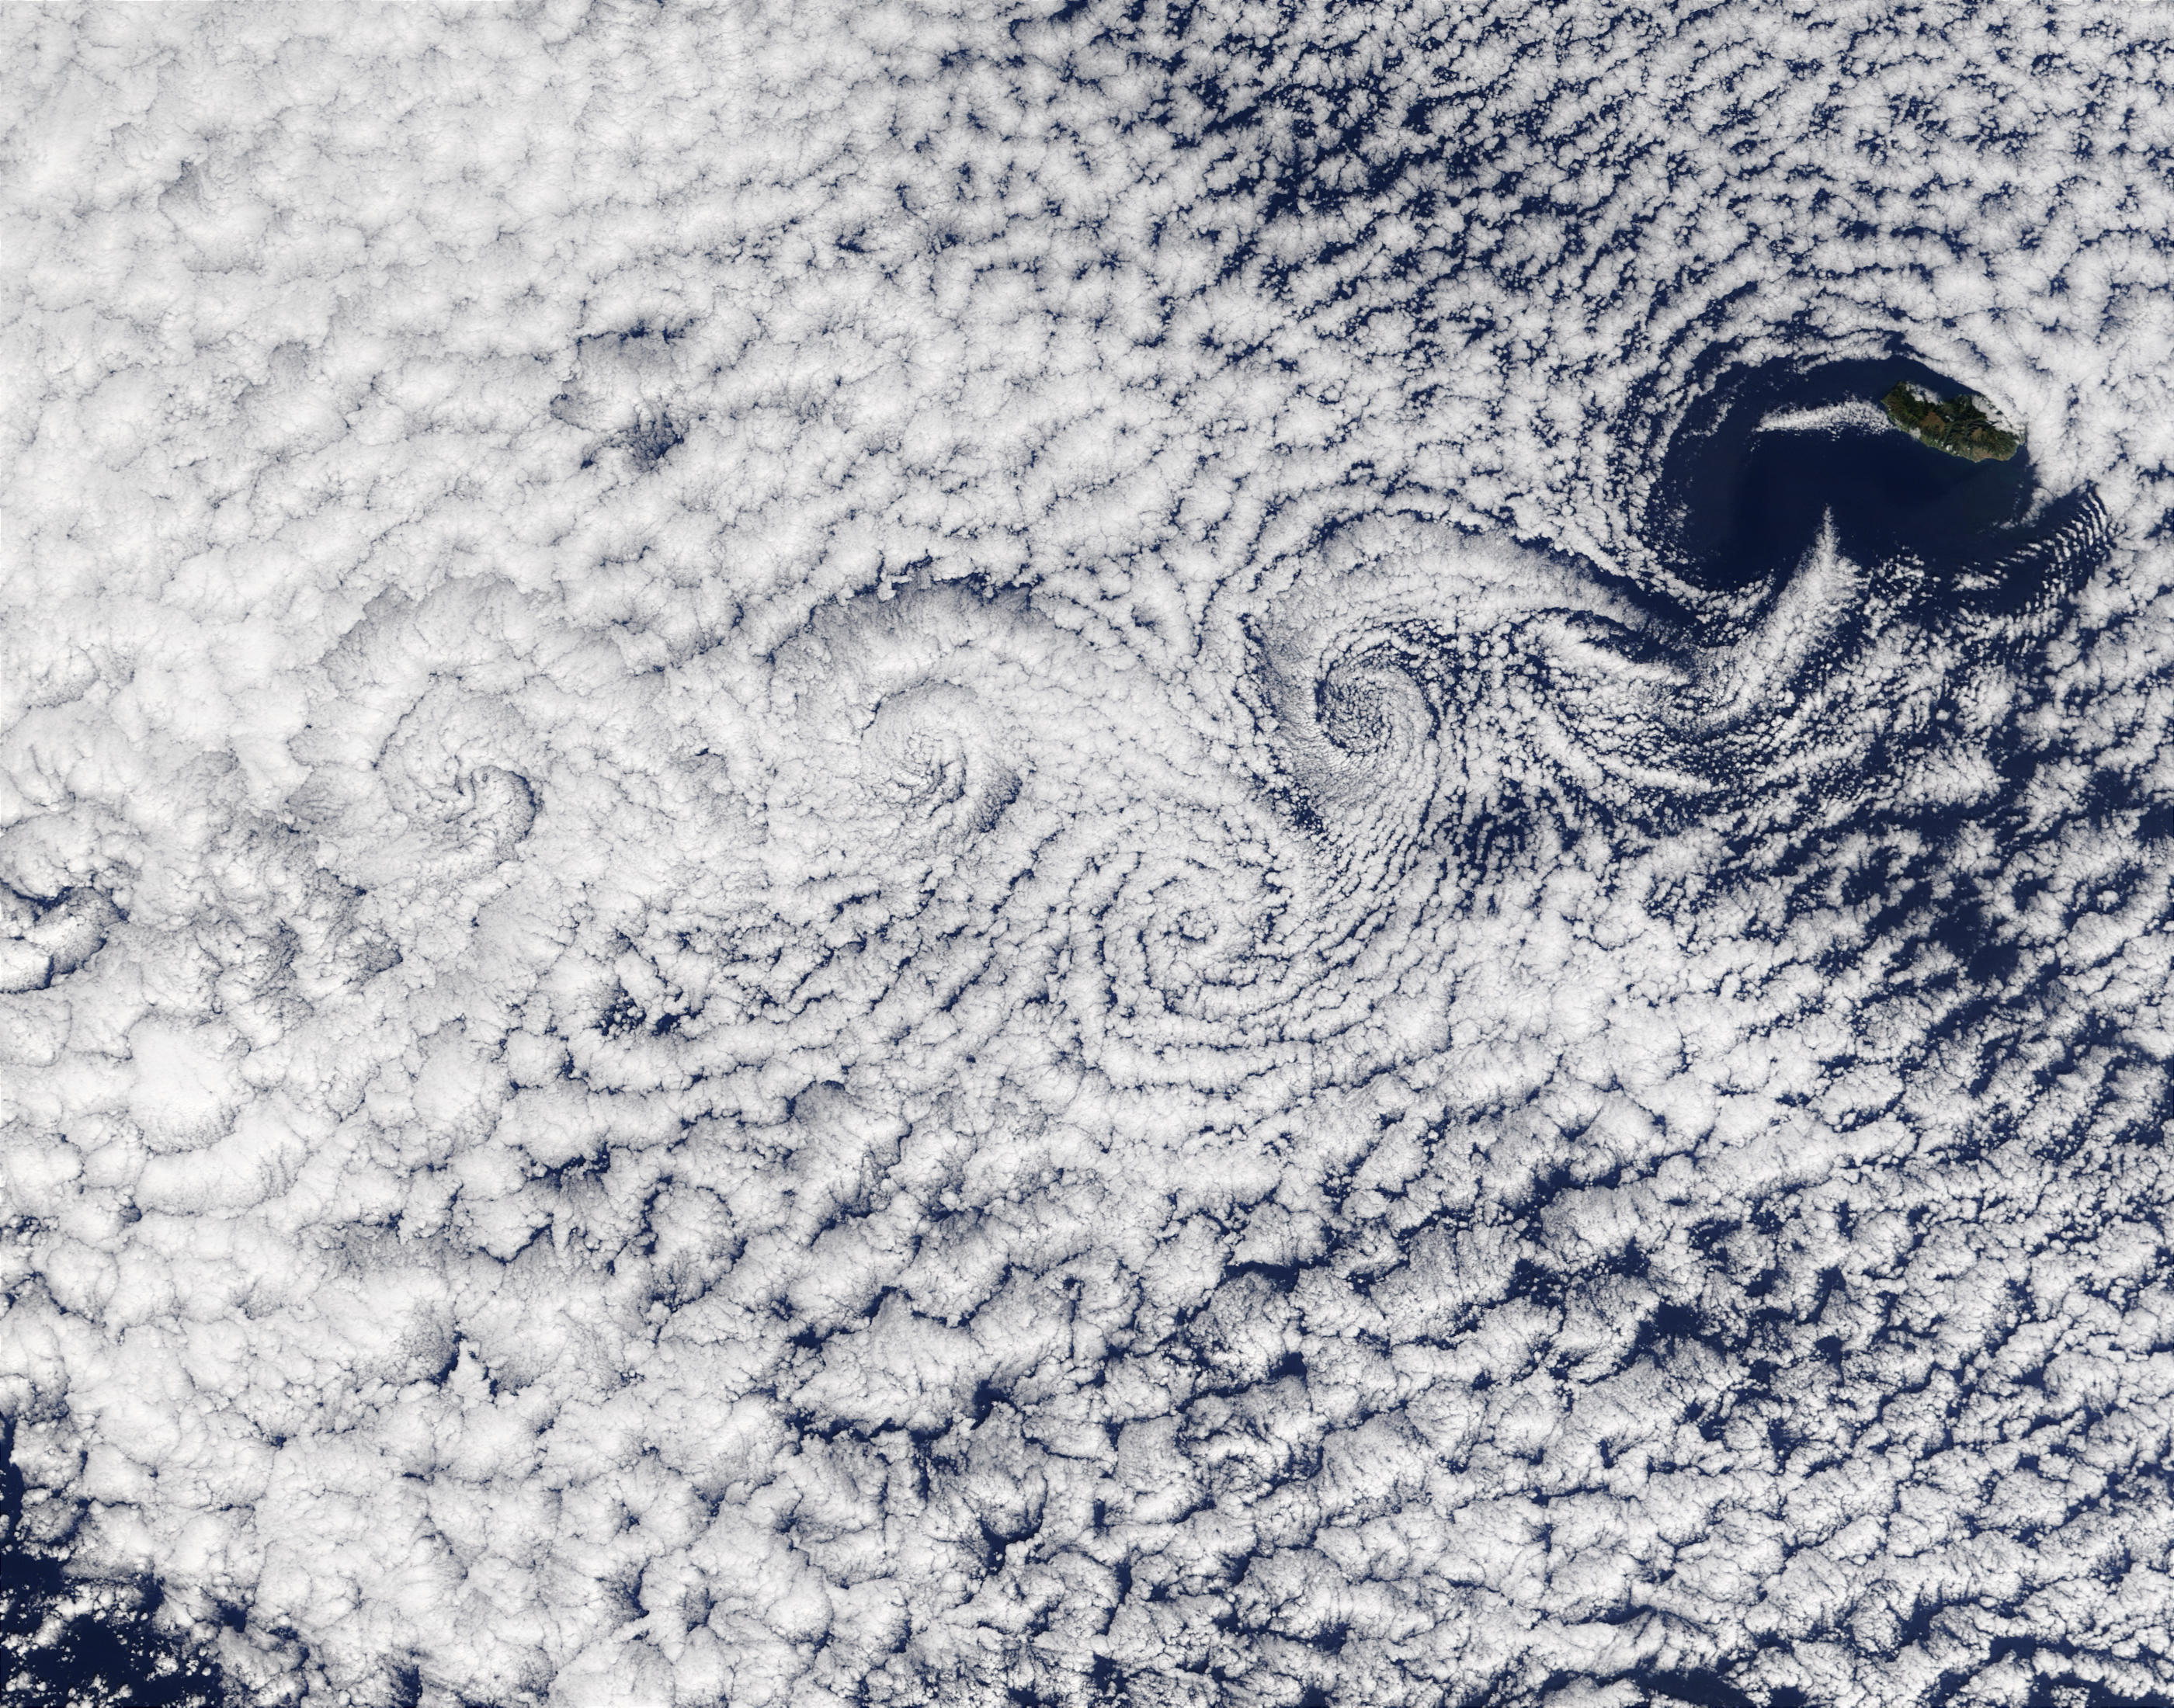 Vortex street near Madeira Island - related image preview